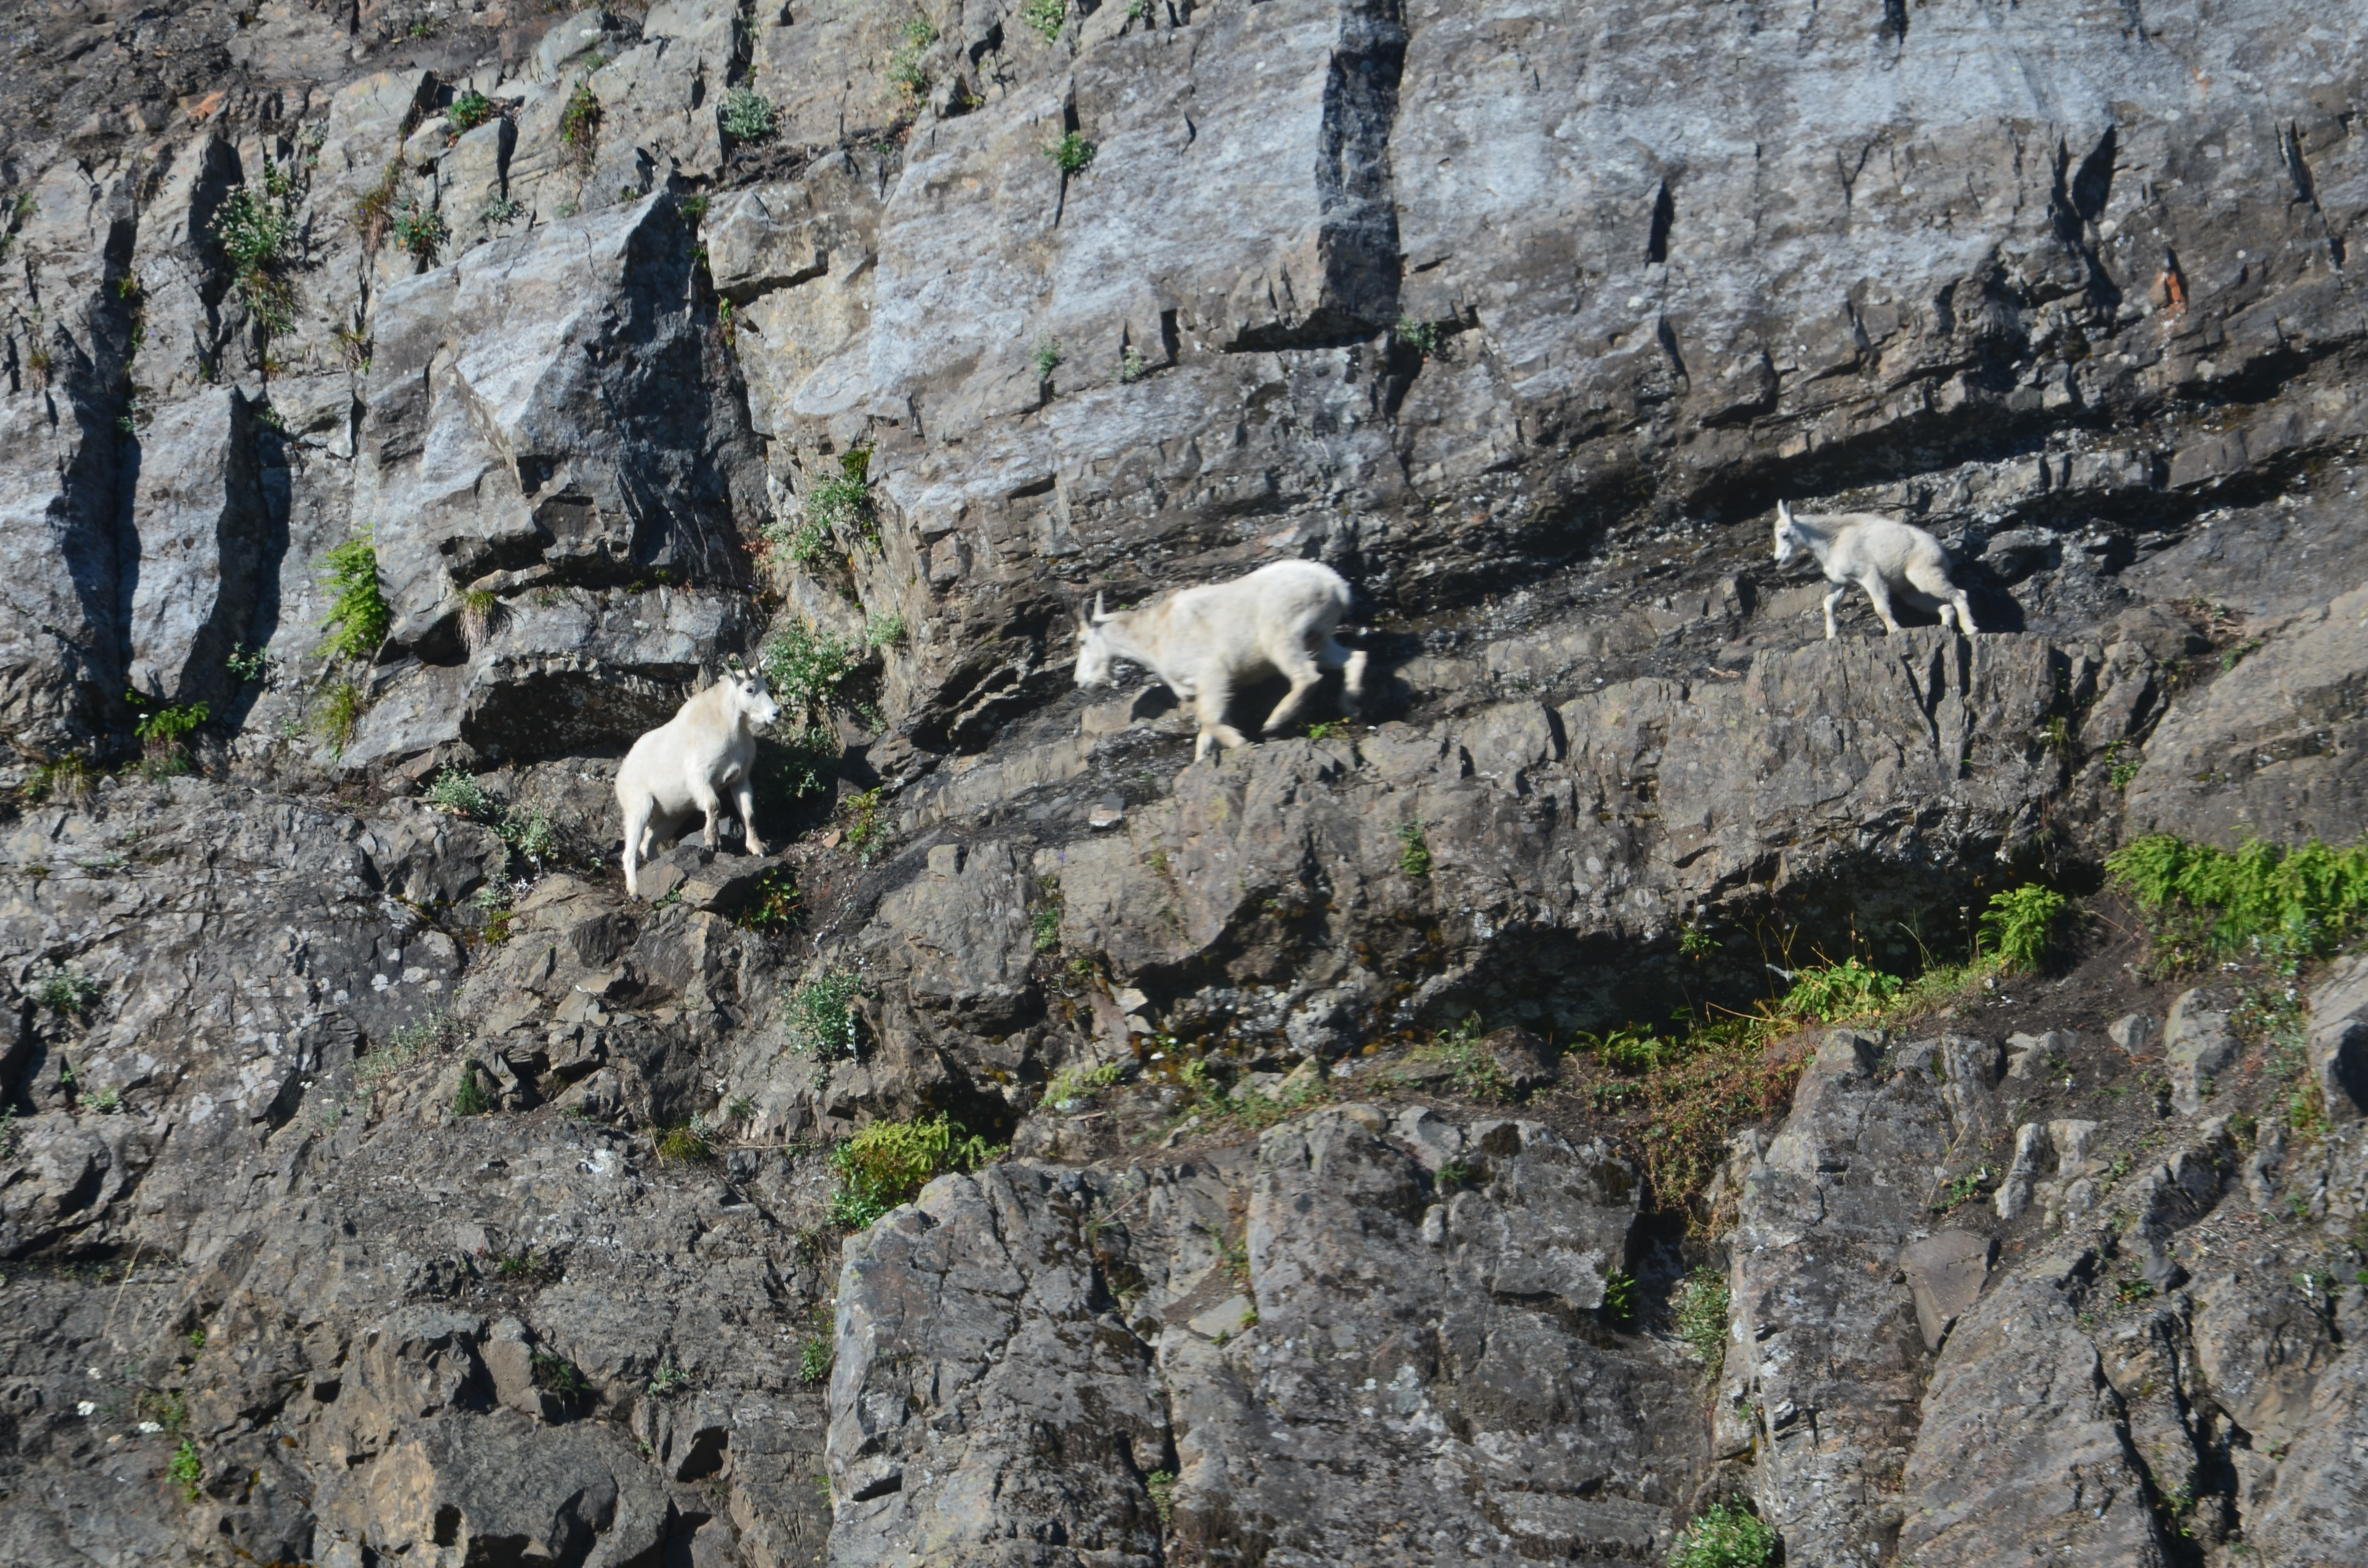 Tulalip Tribes Natural Resources Department news link to North Cascades Mountain Goats Threatened by Climate Change with image of mountain goats on cliff face of mountain